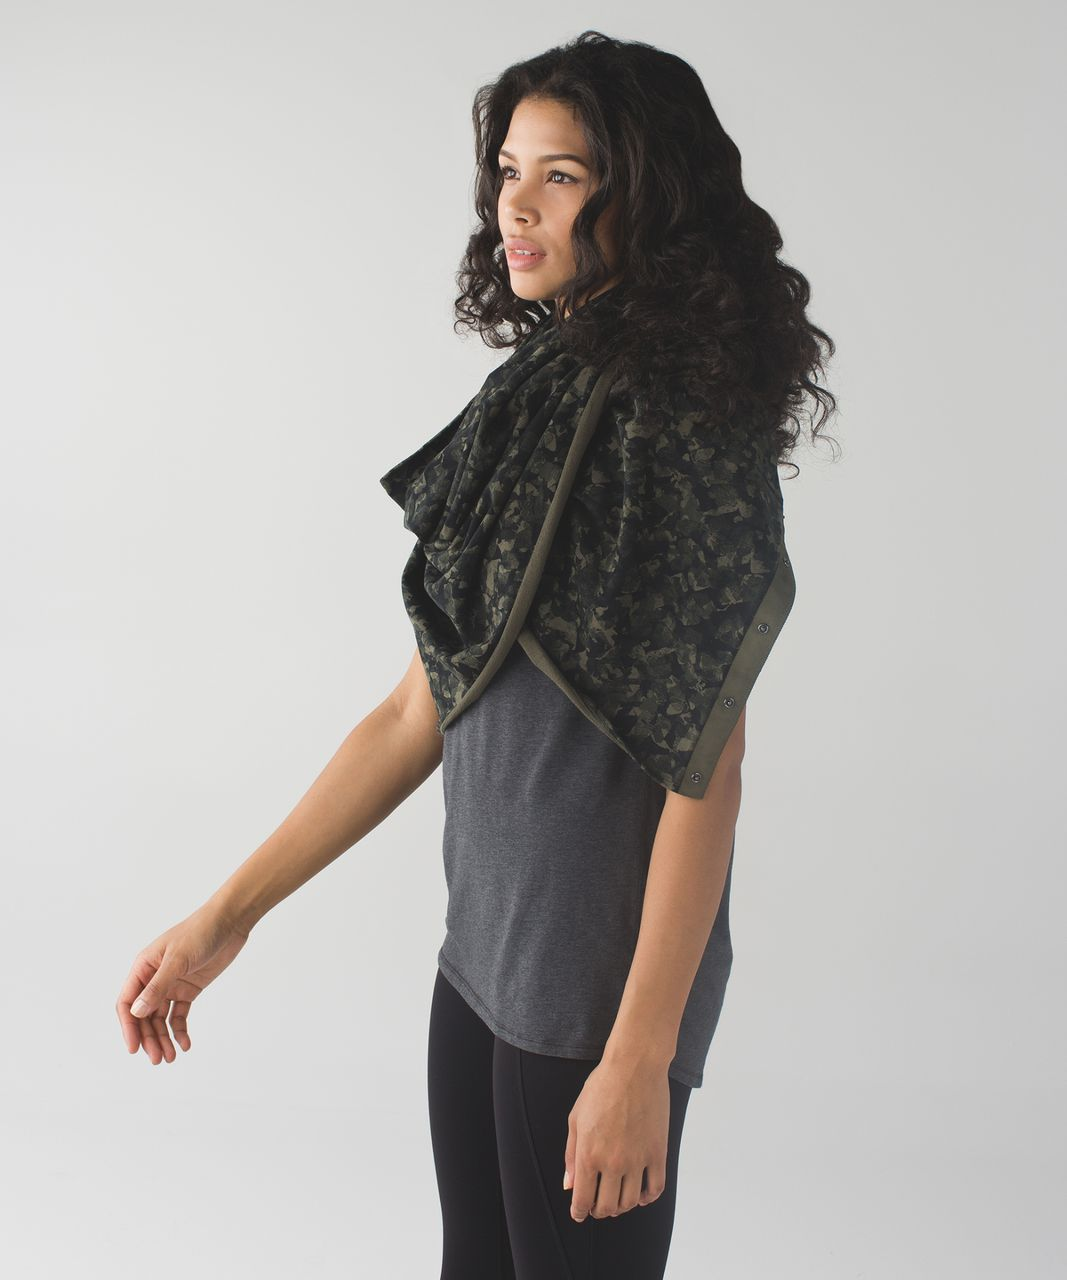 Lululemon Vinyasa Scarf *Cotton - Mystic Jungle Fatigue Green Black